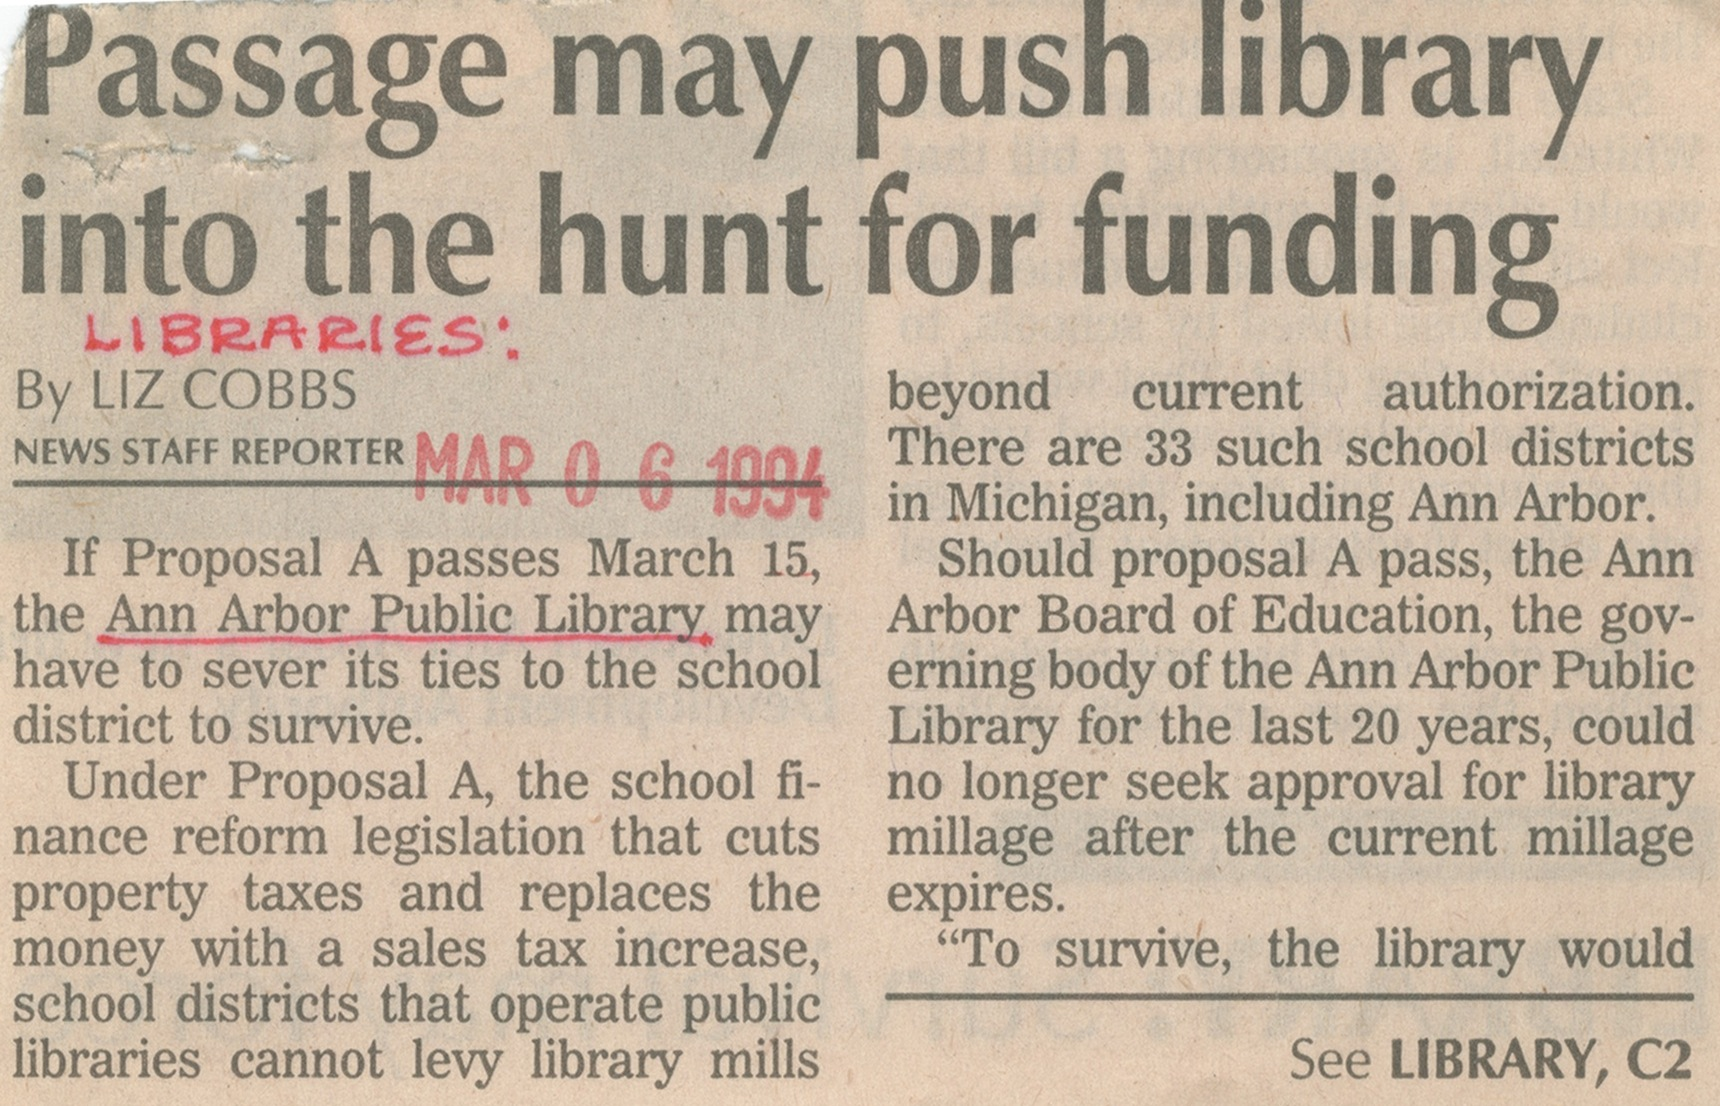 Passage May Push Library Into The Hunt For Funding image